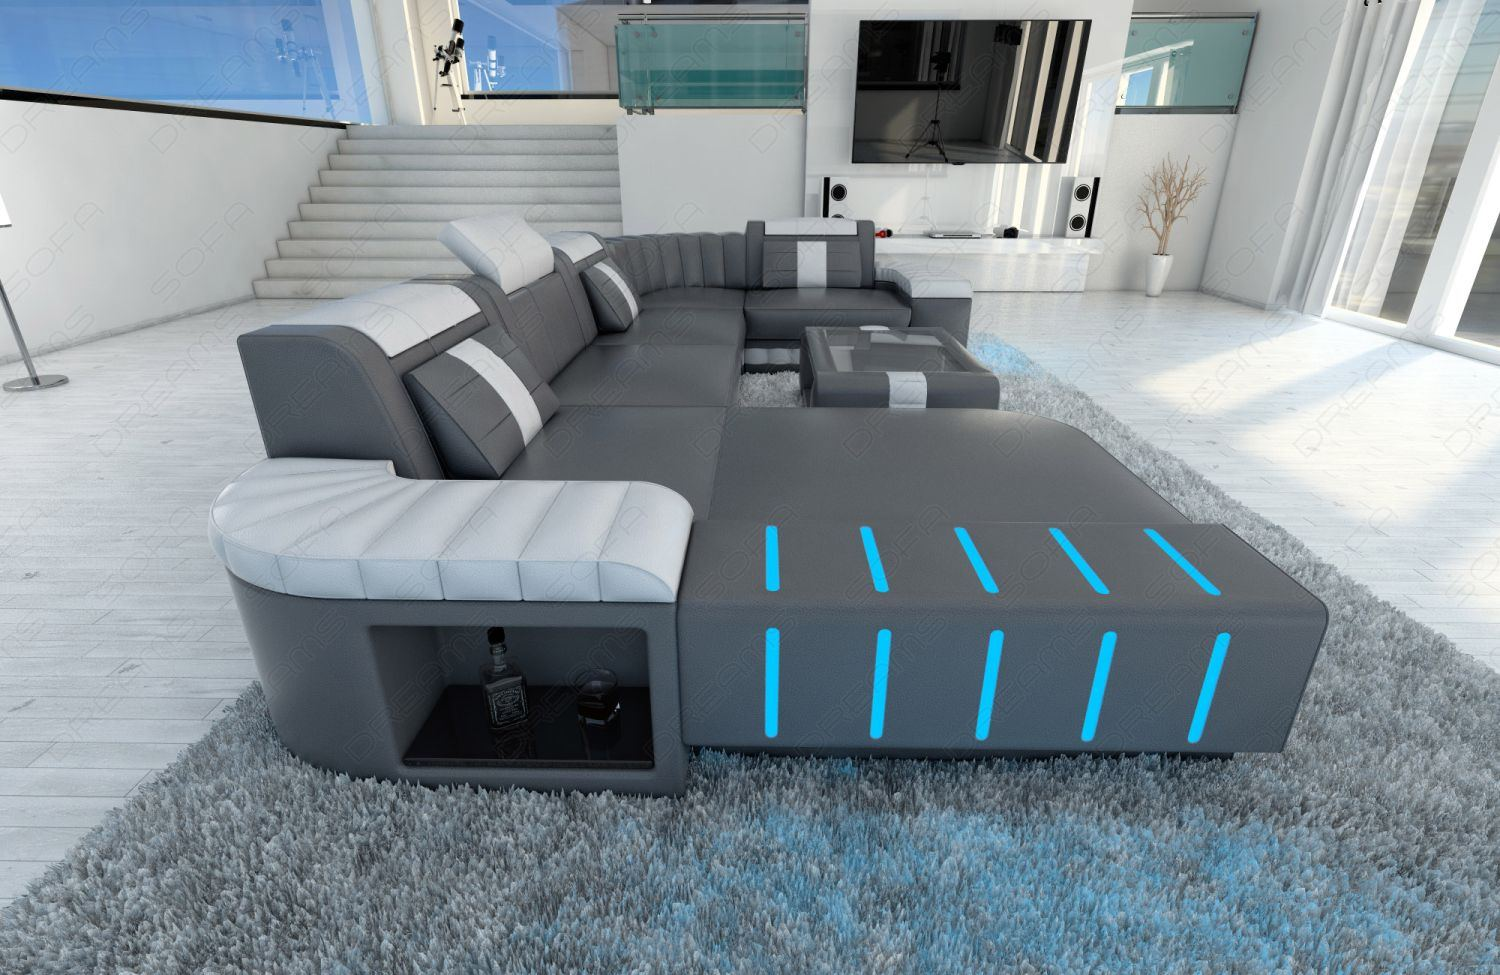 details about big sectional leather sofa bellagio u with led lighting. Black Bedroom Furniture Sets. Home Design Ideas